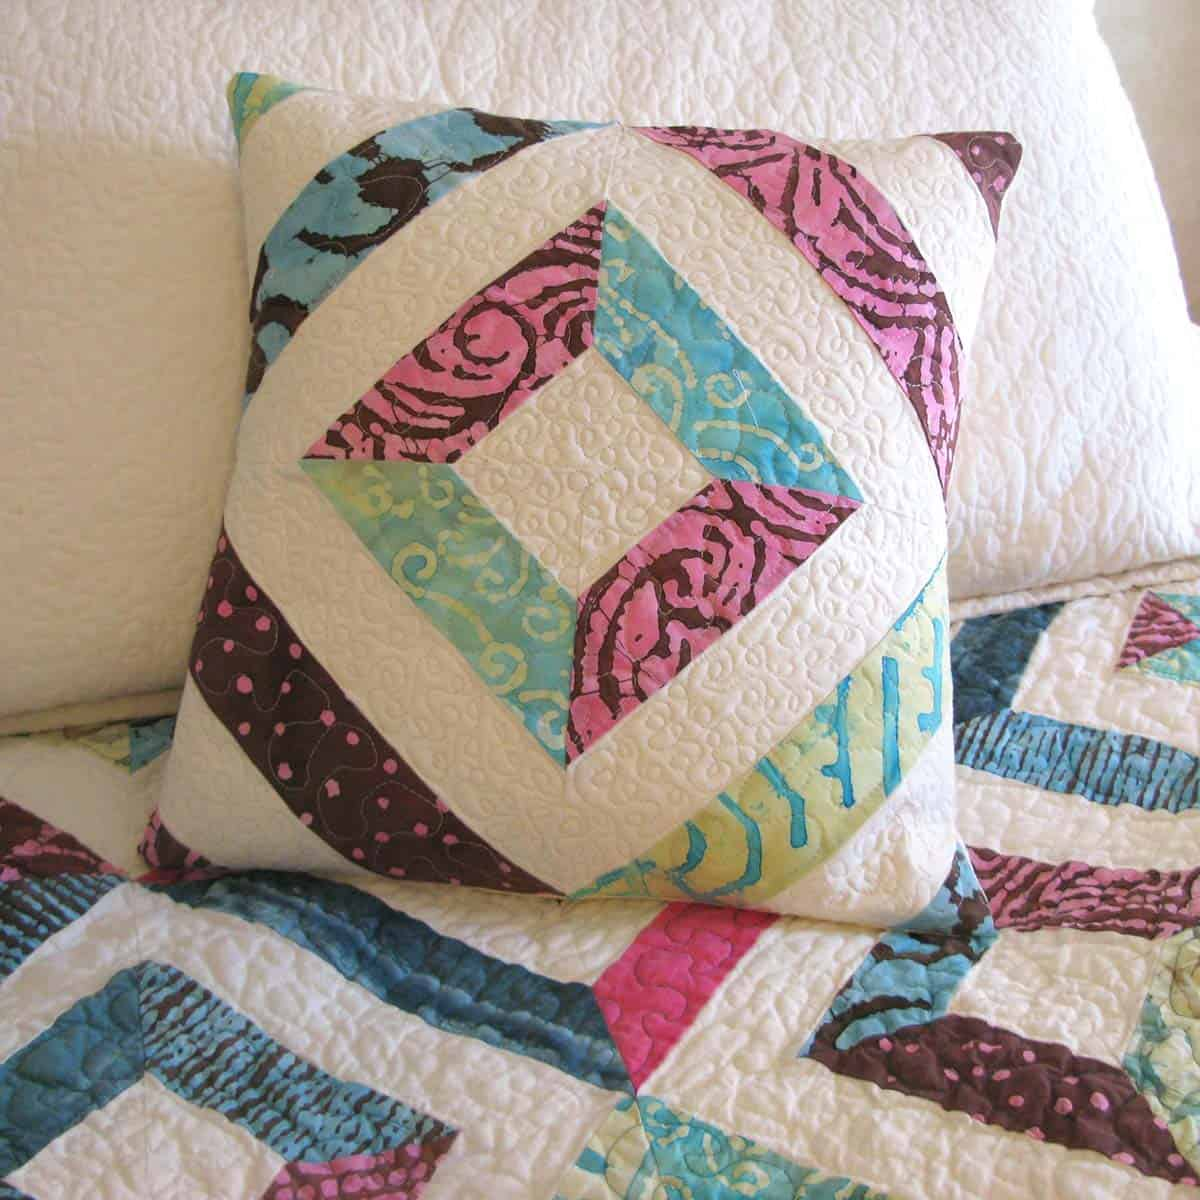 Petunia Strings pillow on quilt